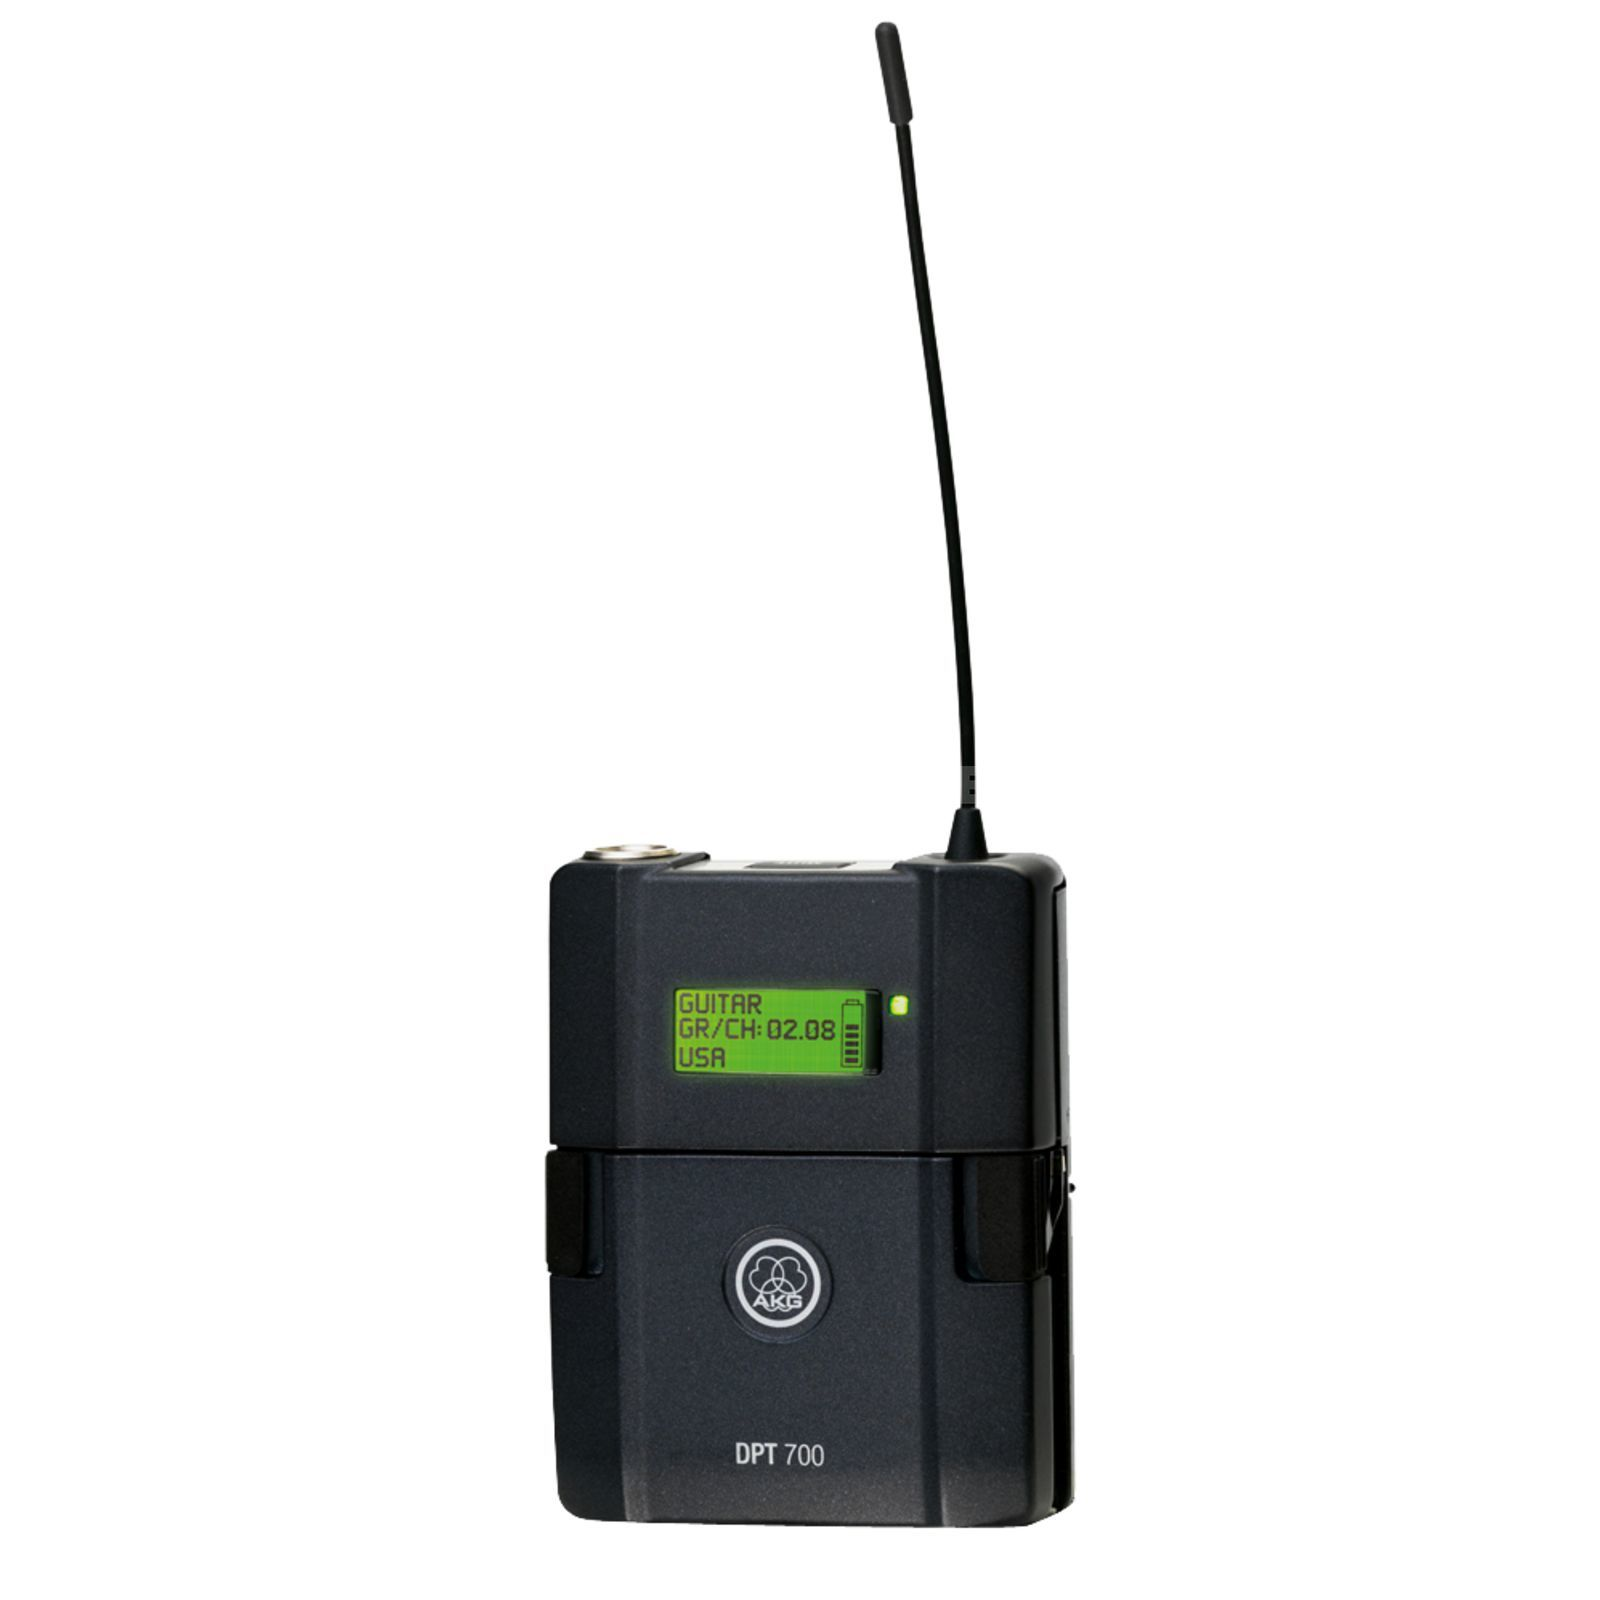 AKG DPT 700 B2 digital pocket transmitter Produktbillede